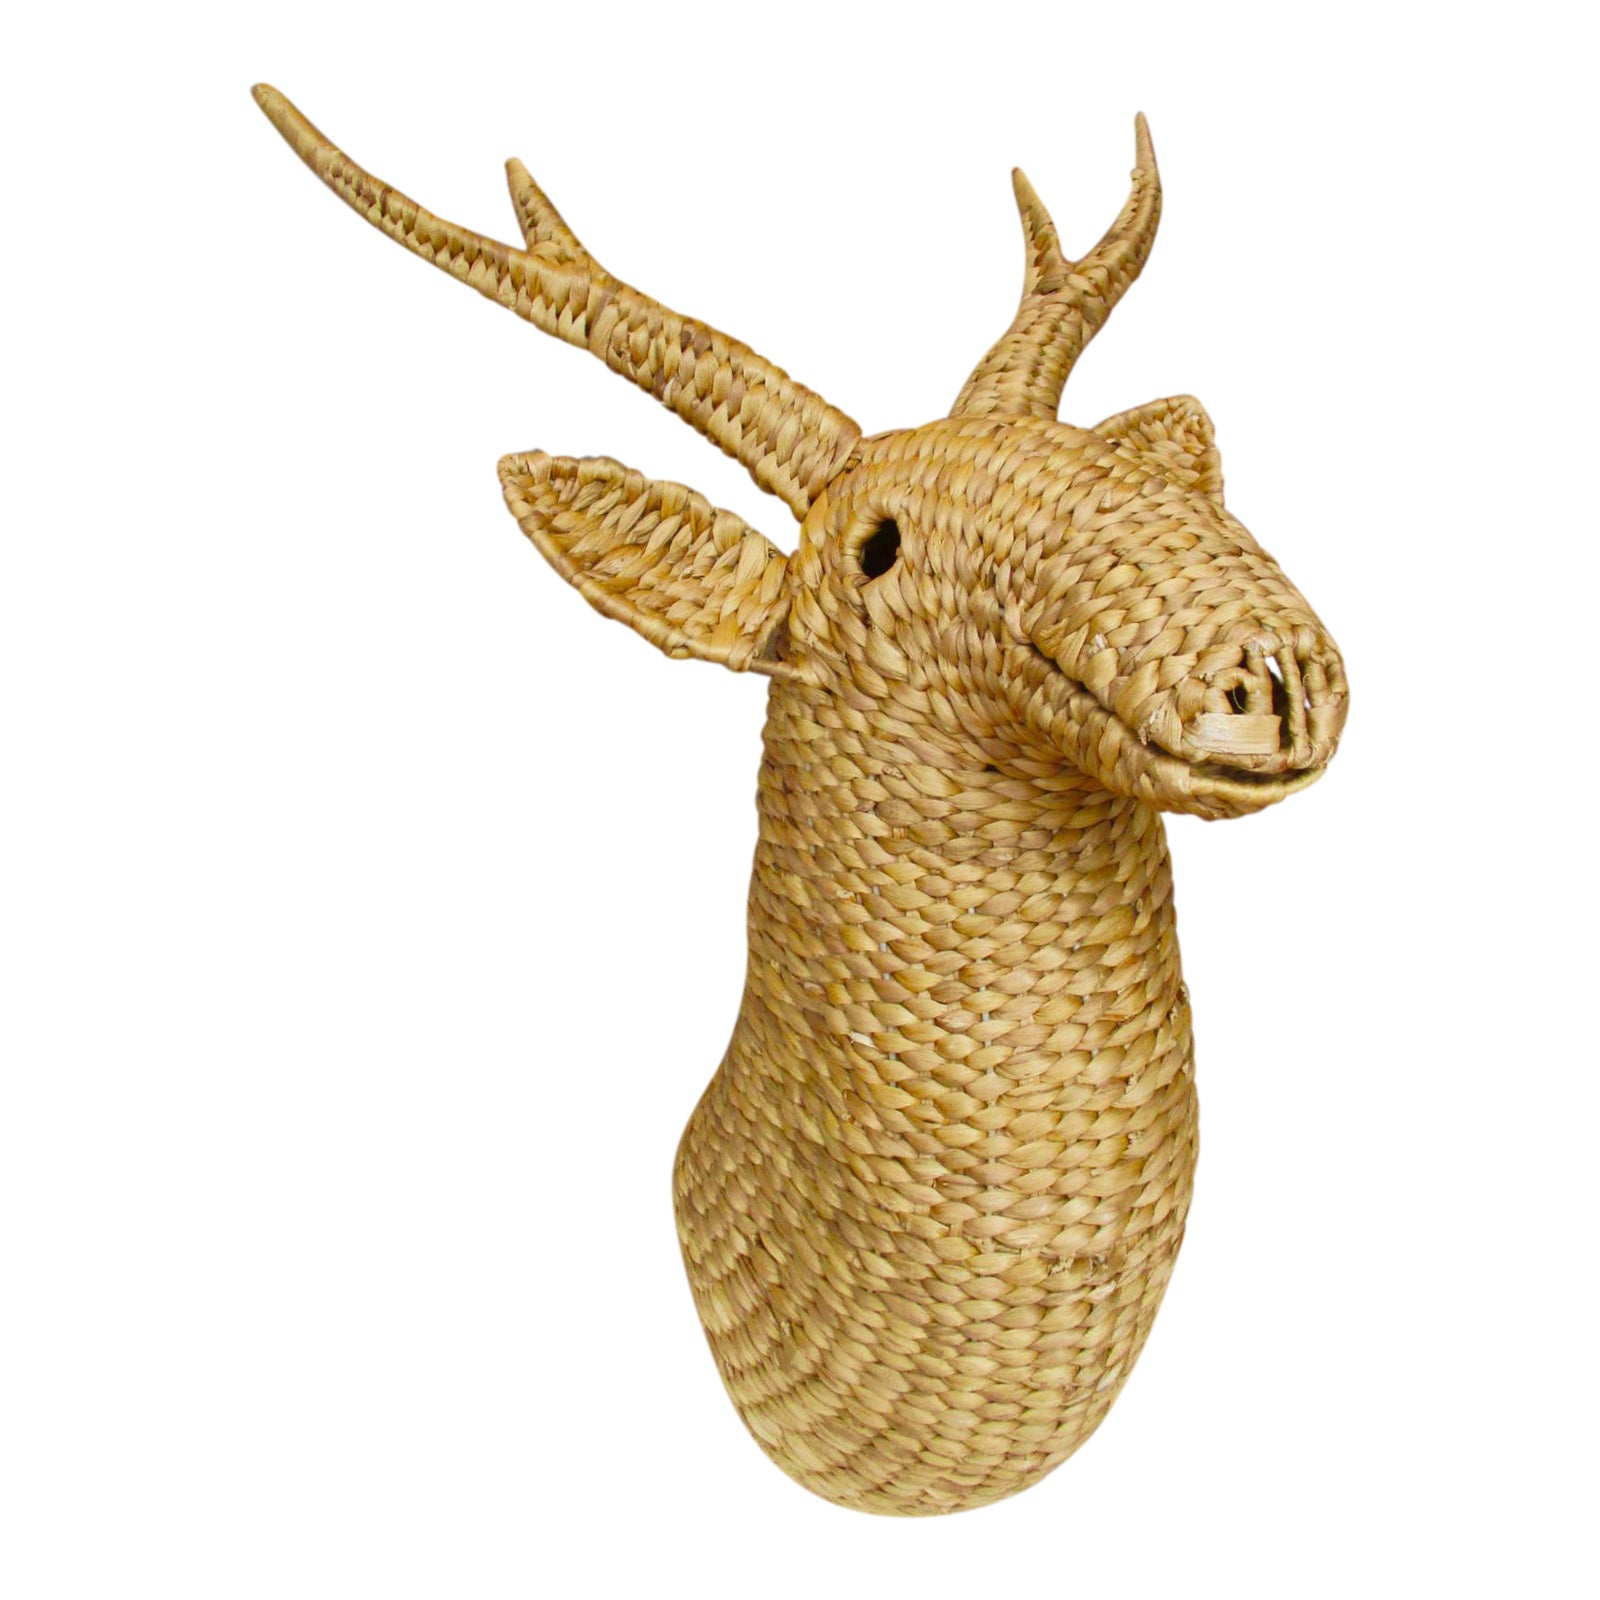 Vintage Rattan Wicker Sculptural Wall Object Abstract Deer Moose ...